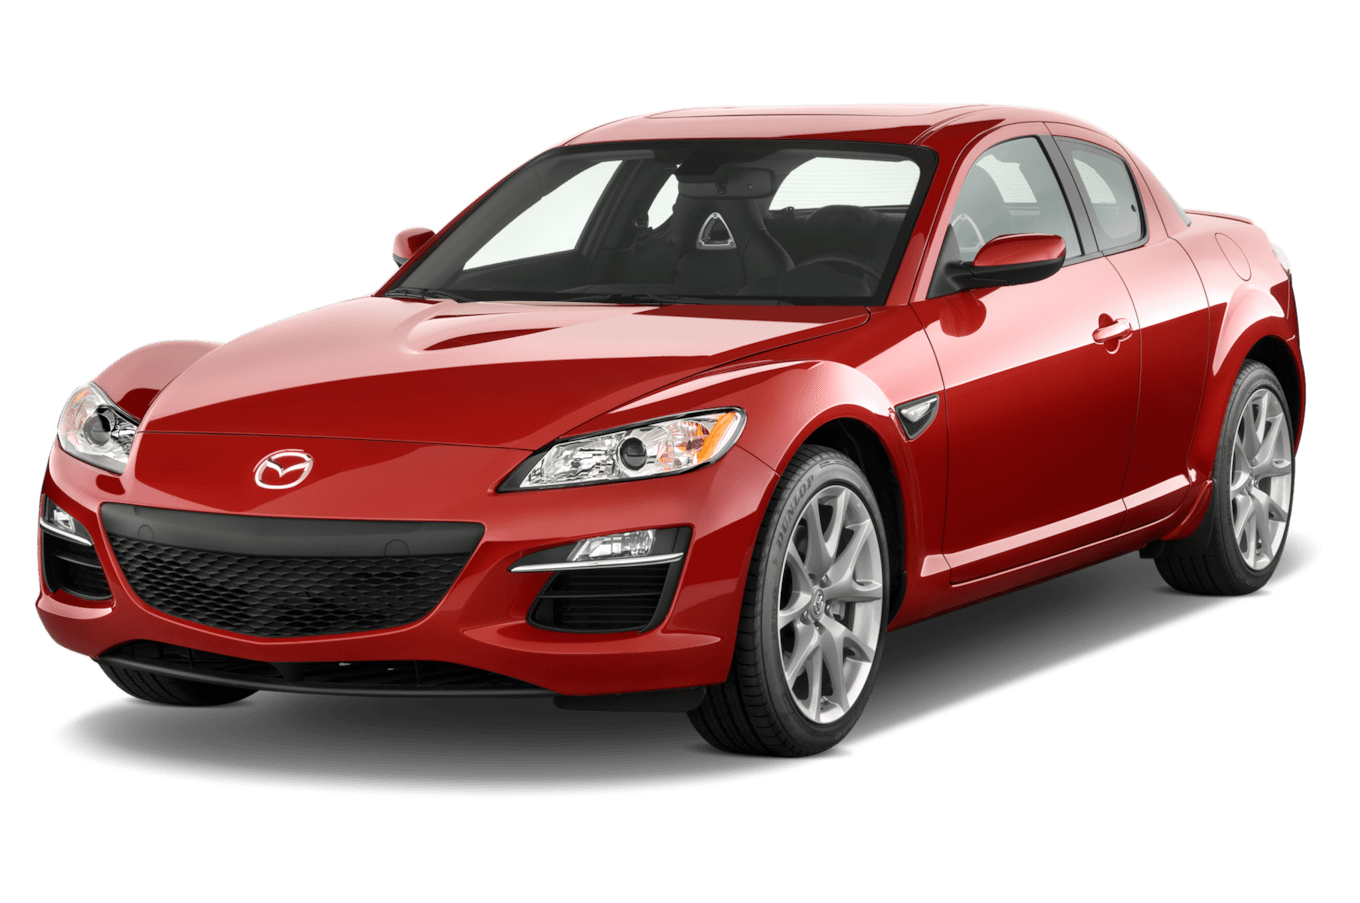 mazda rx 8 wiring harness varieties wiring diagram gp 2010 mazda rx 8 reviews research rx [ 392:261 x 1360 Pixel ]